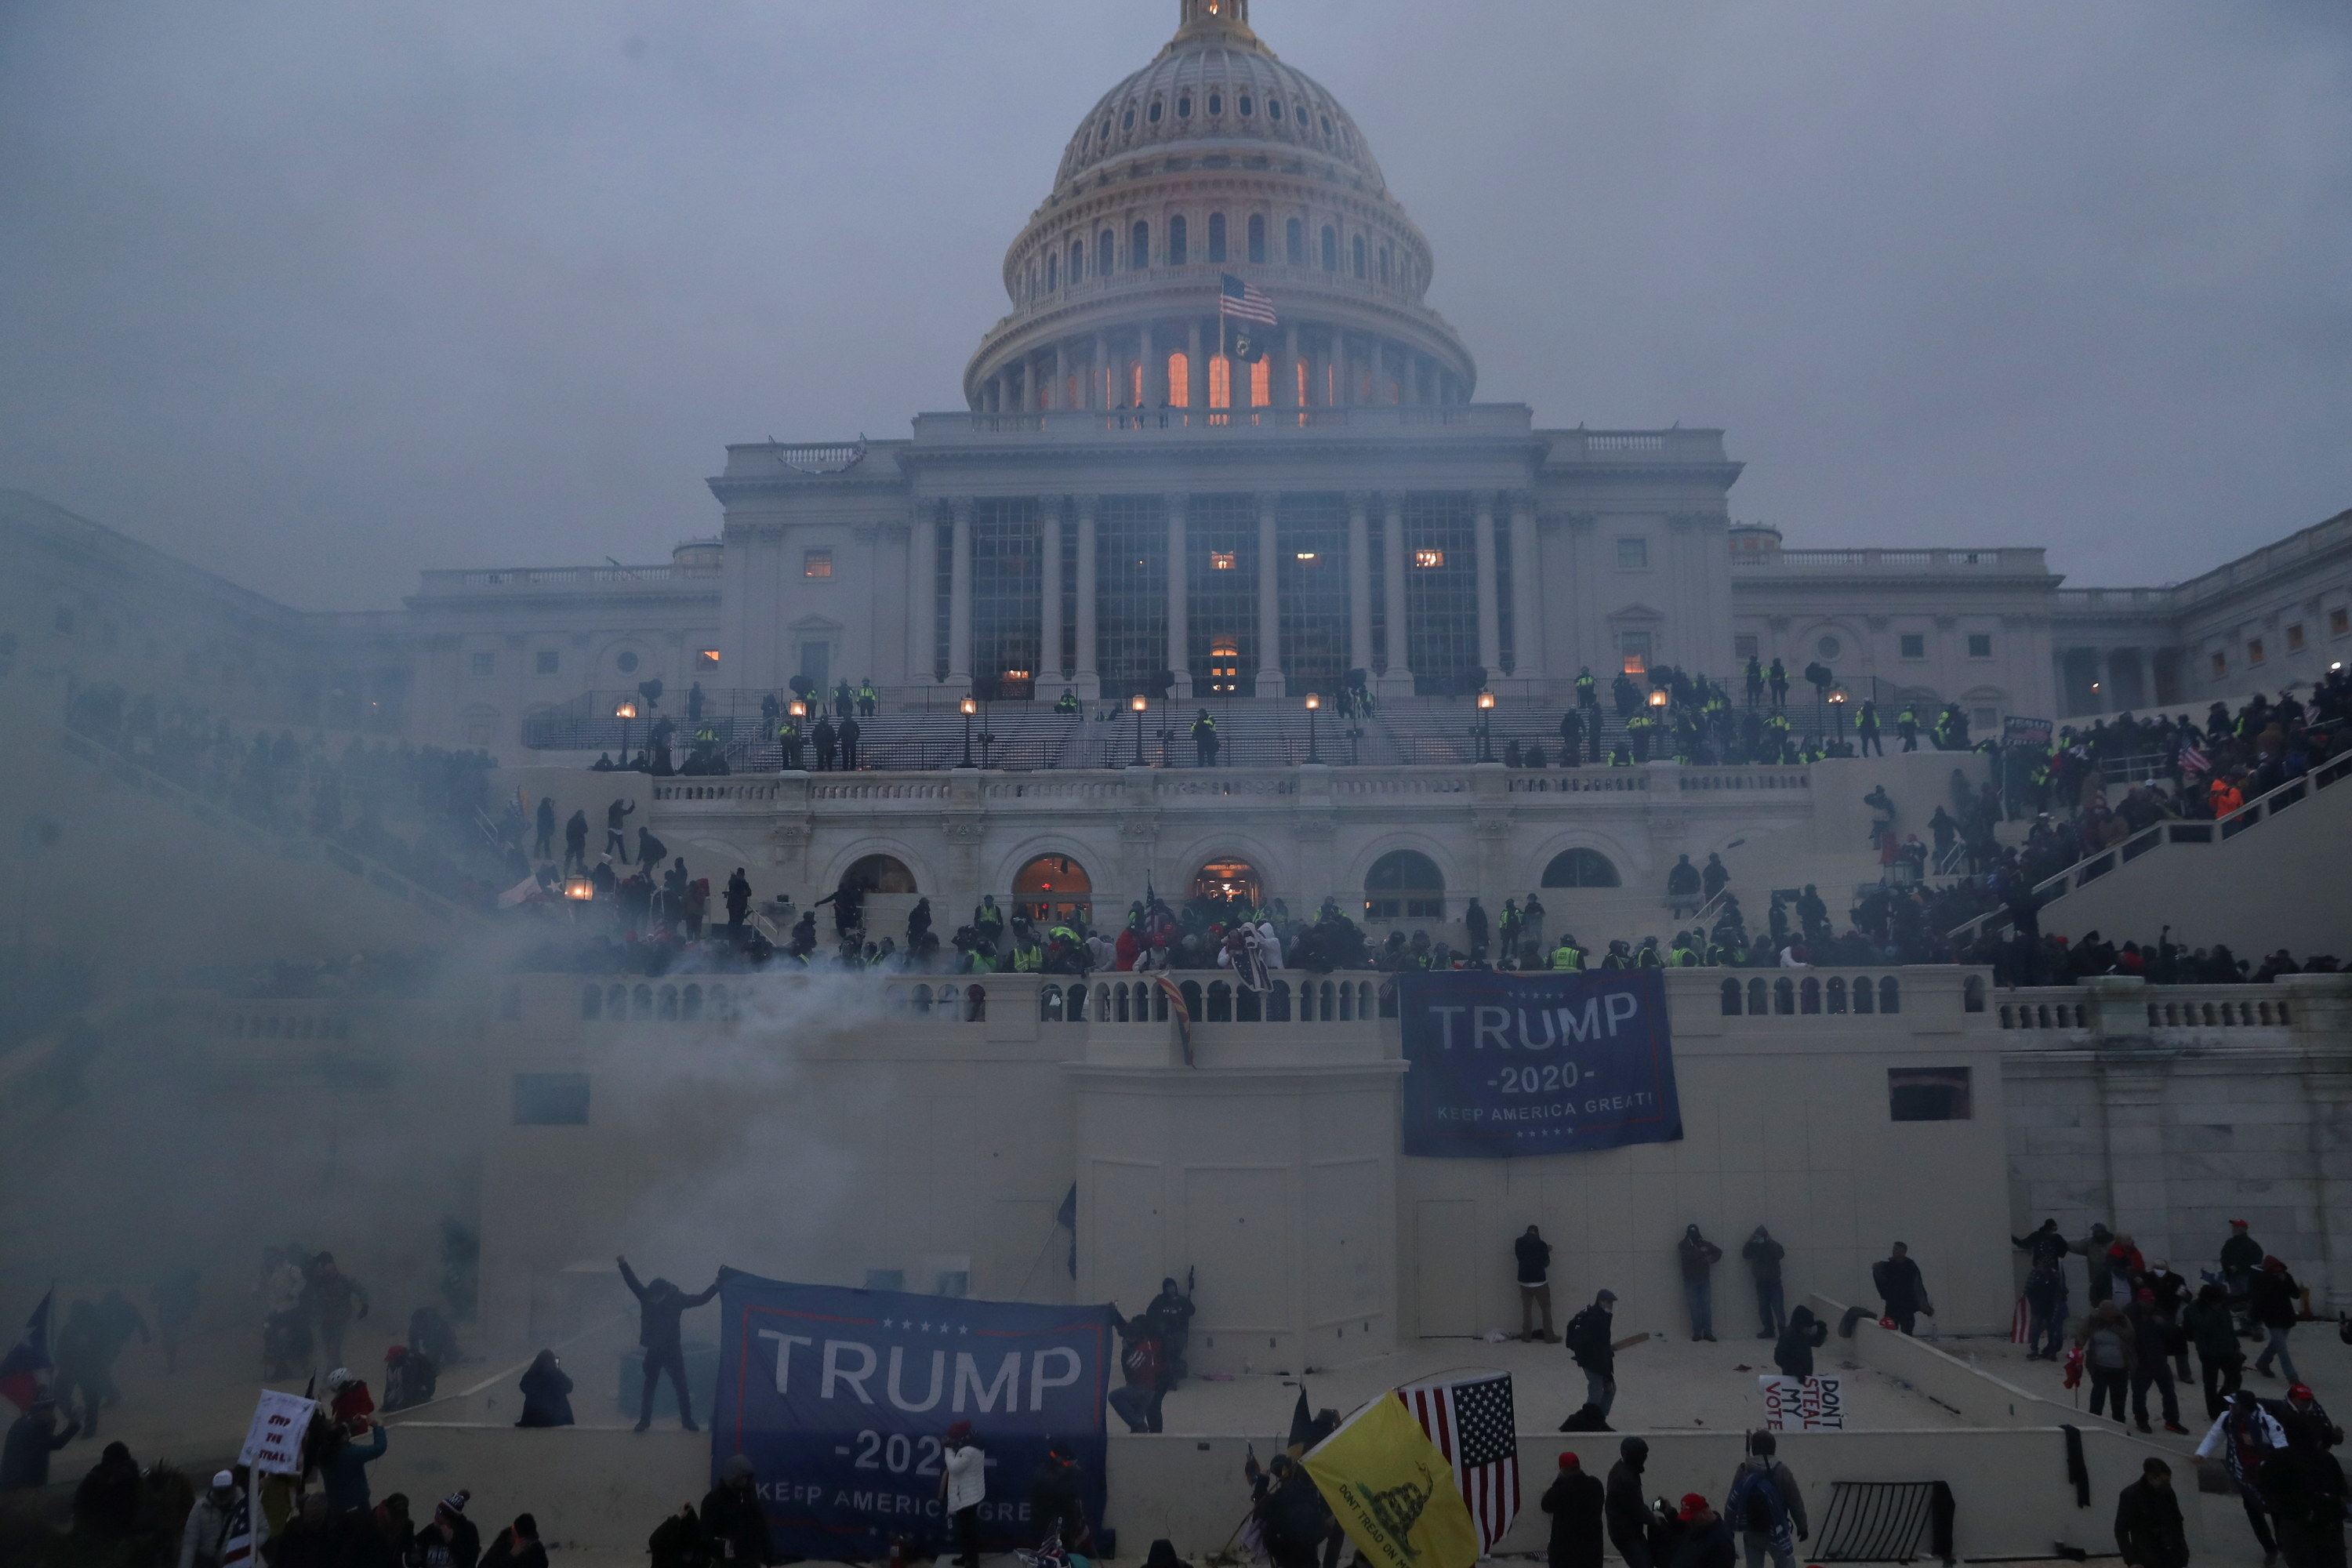 Trump supporters at the Capitol building while the sun sets.